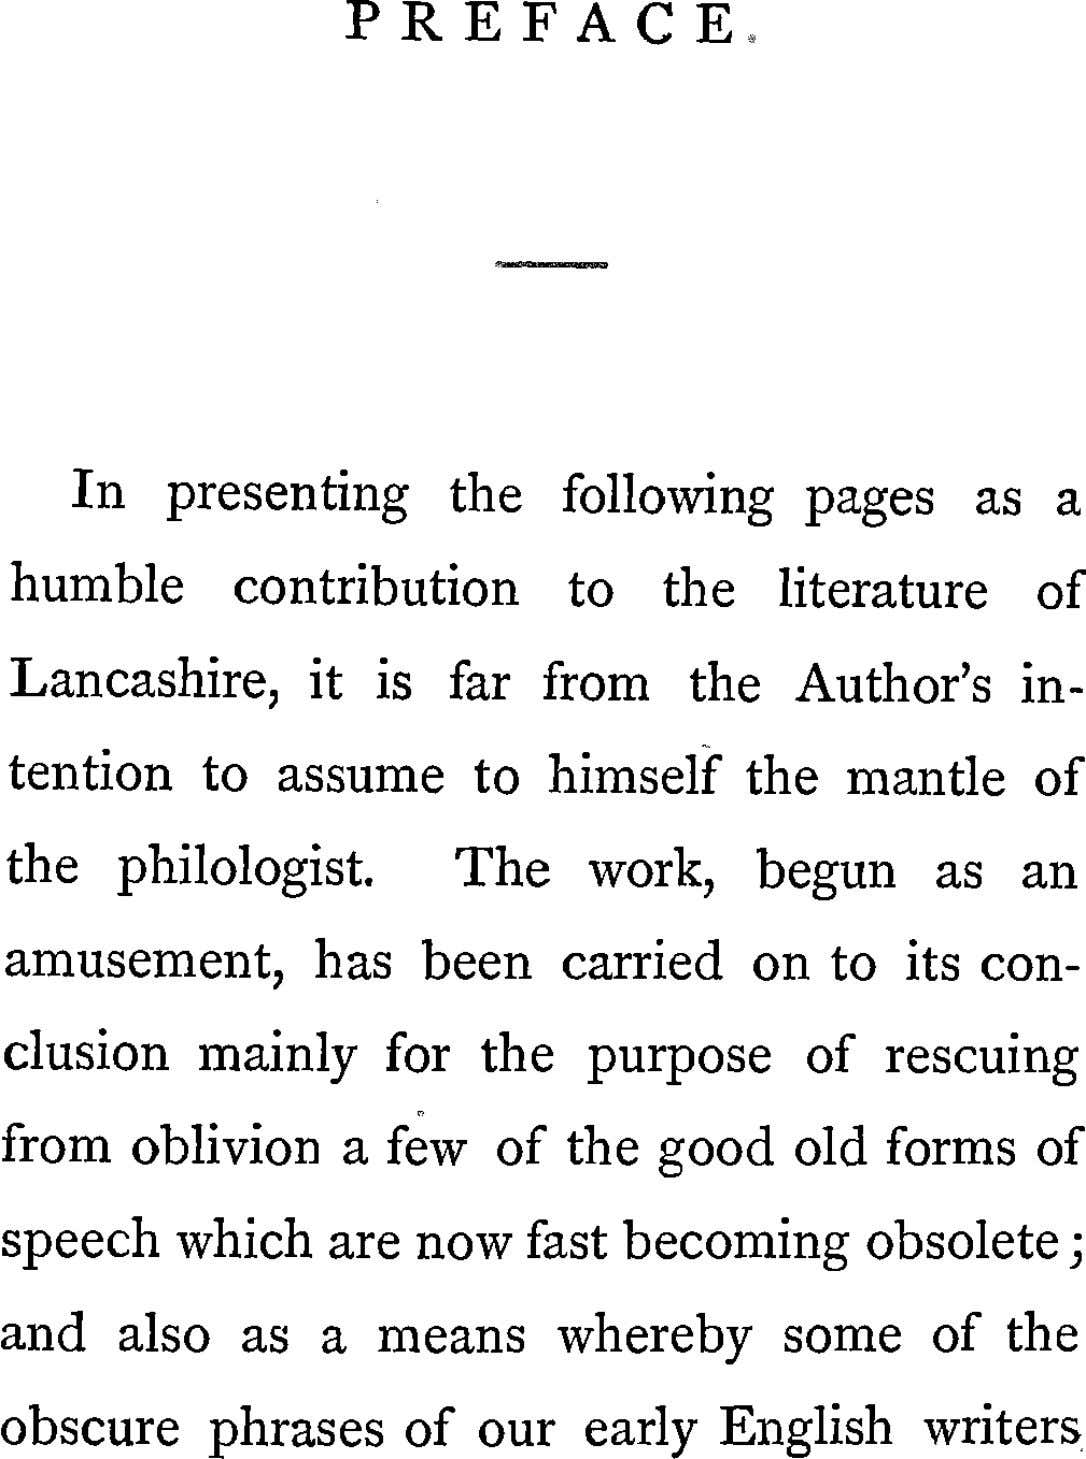 PREFACE In presenting the following pages as a humble contribution the literature to of Lancashire,